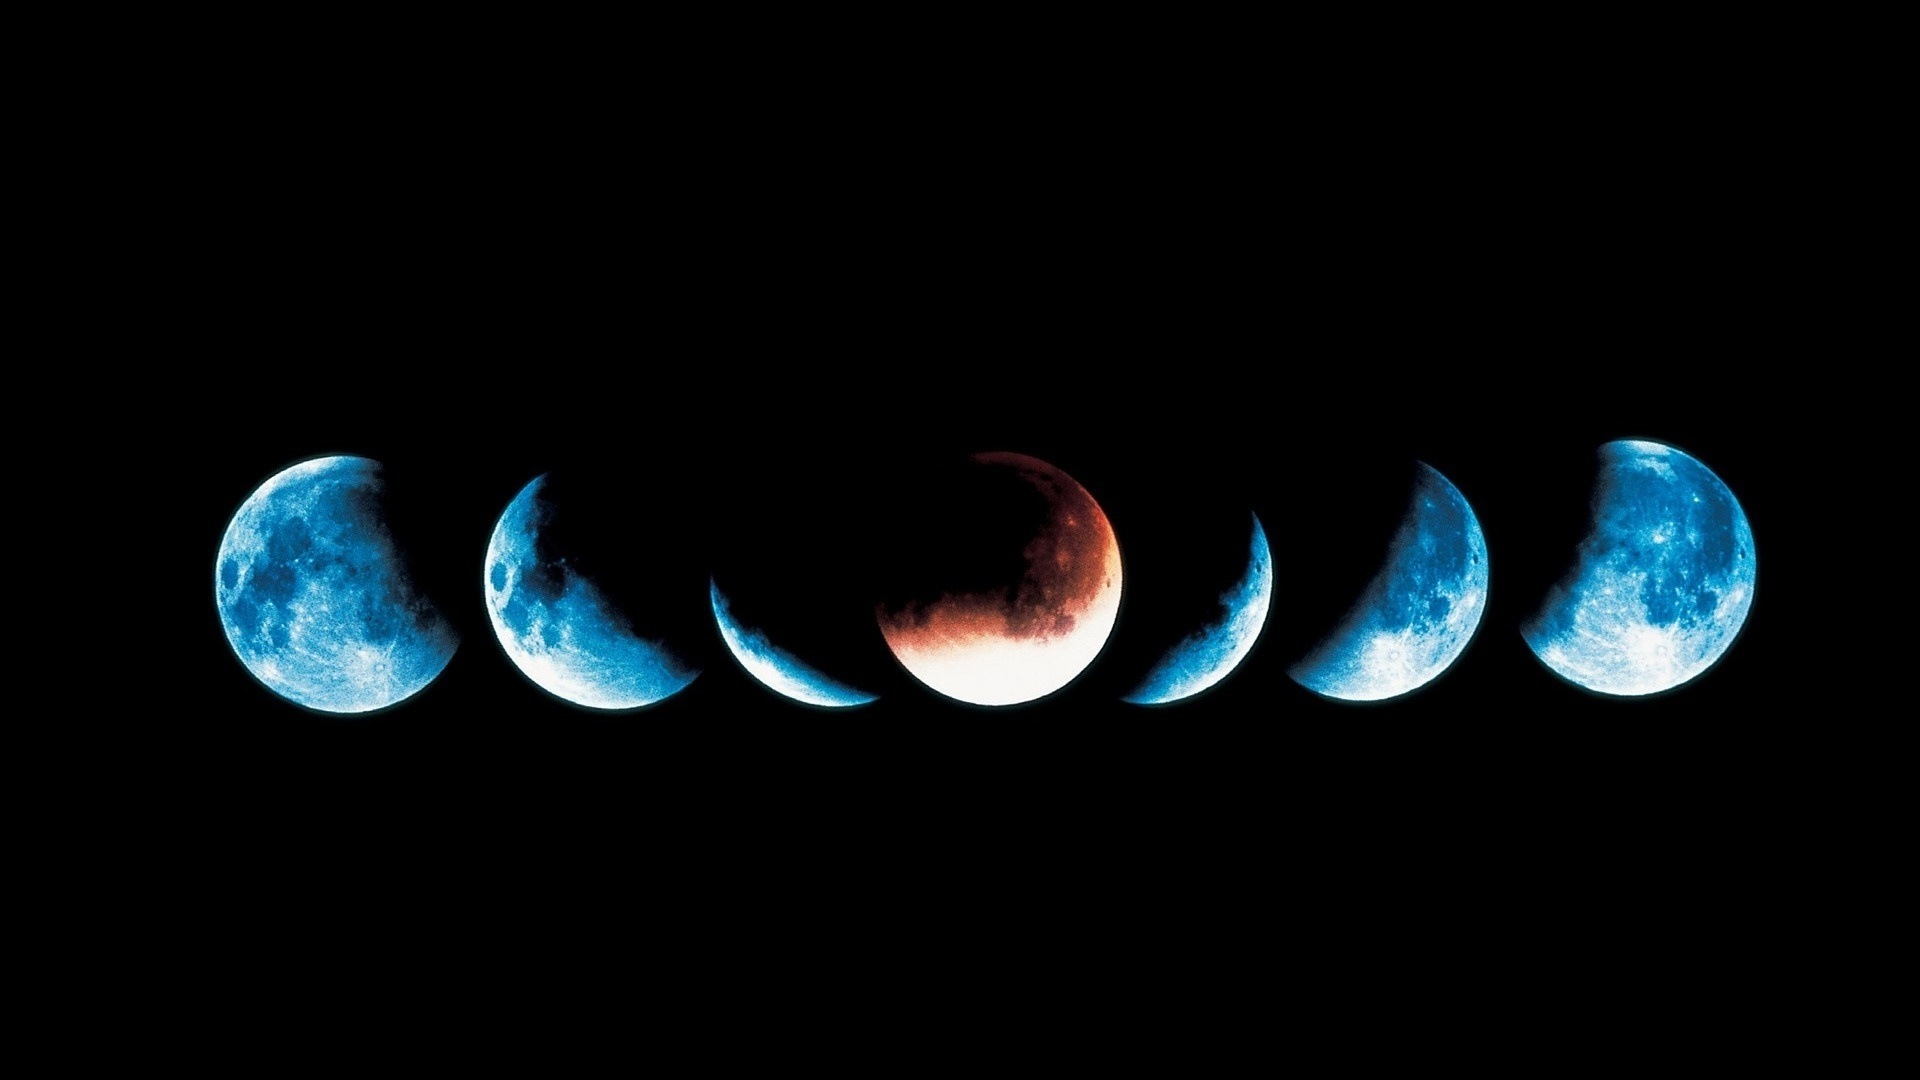 Moon Phases Wallpaper Picture hd